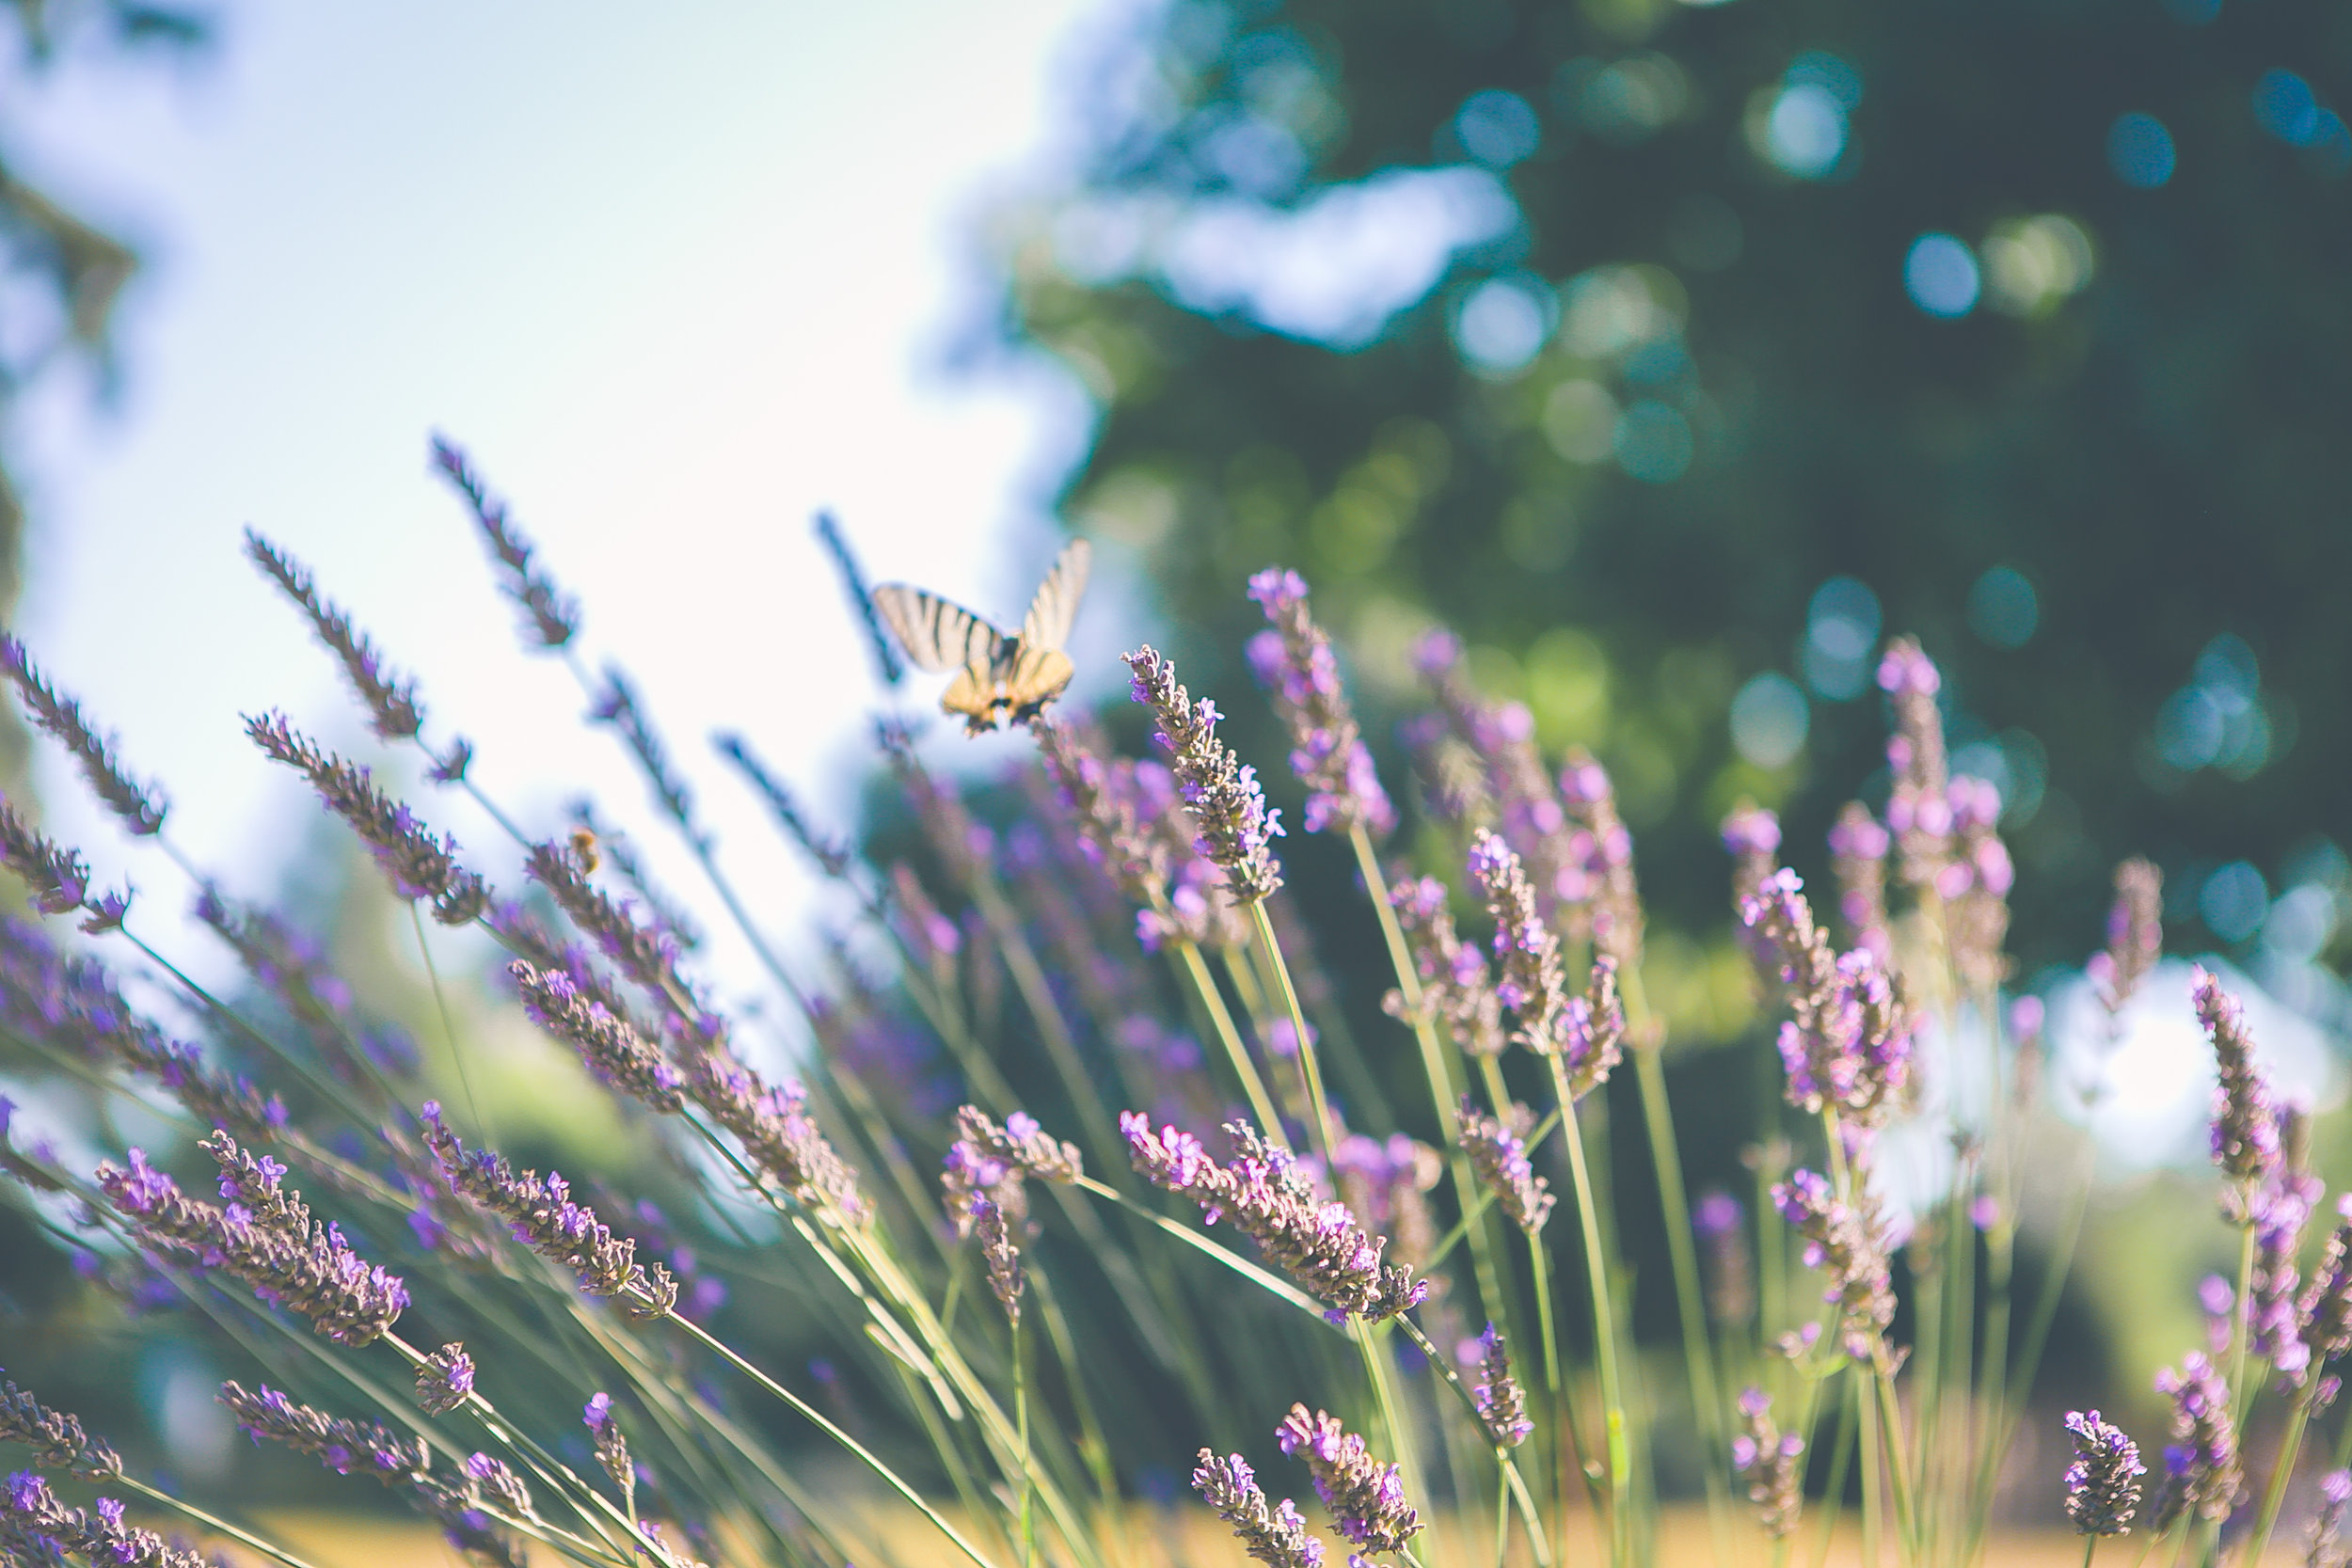 Lavender blossoming in the French Countryside